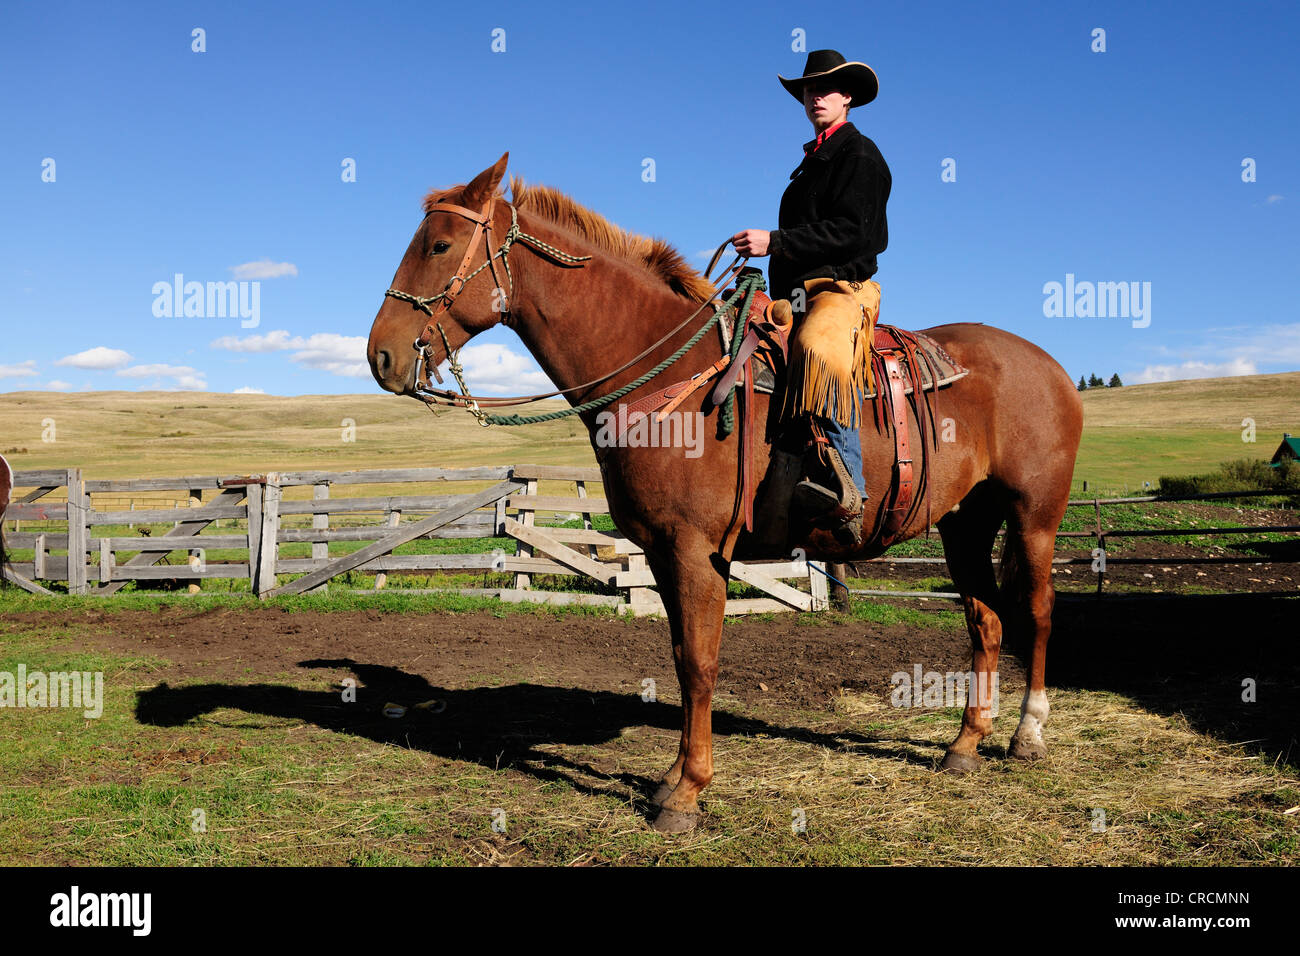 Cowboy Horse High Resolution Stock Photography And Images Alamy